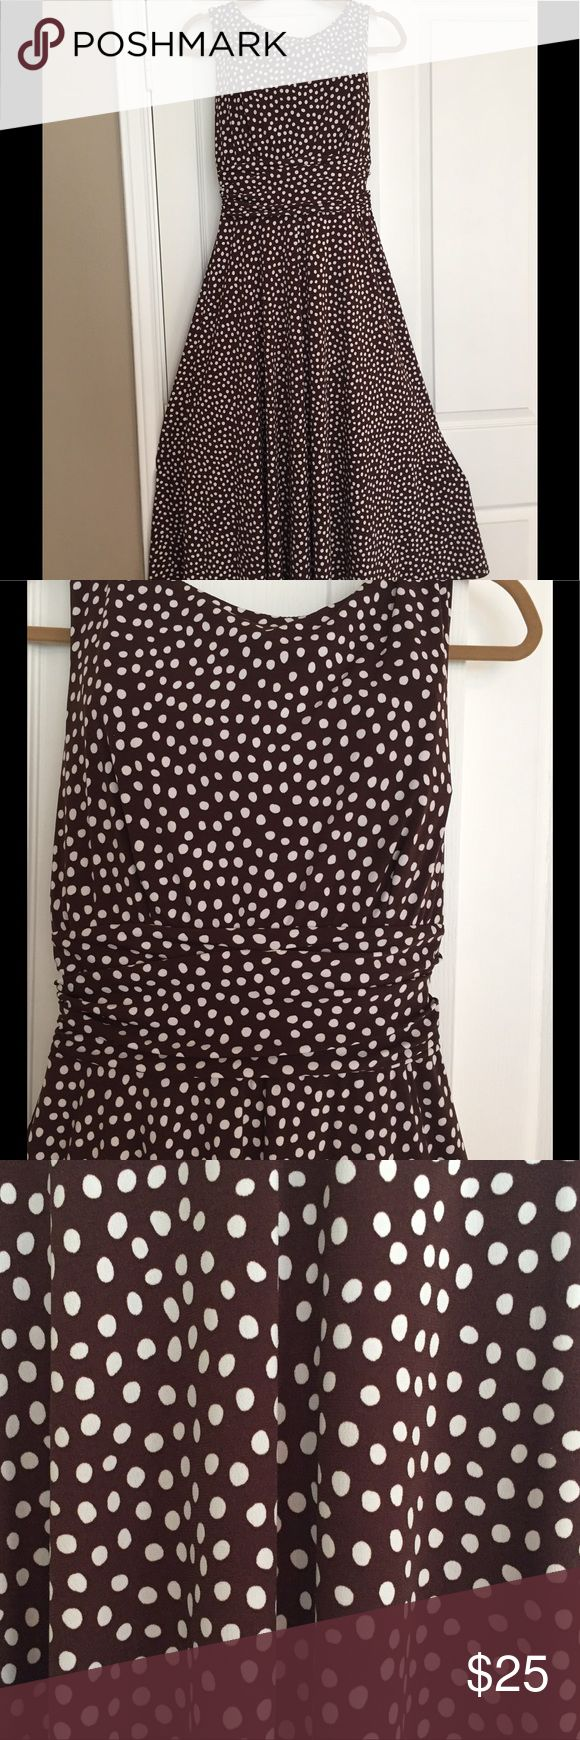 Brown and white polka dot summer dress Silky brown and white polka dots,  perfect summer dress. Flattering ruching at the waist Perceptions Dresses